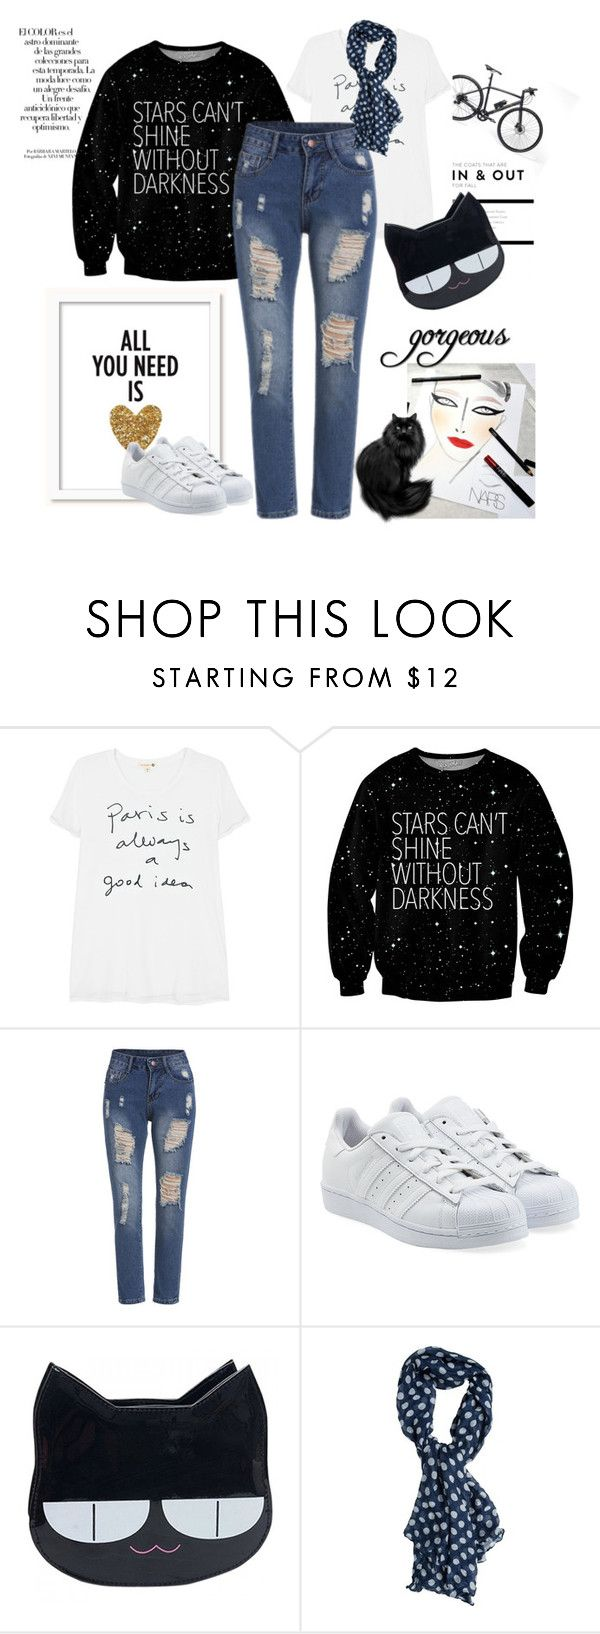 """""""Stars Can't Shine Without Darkness"""" by freisstea on Polyvore featuring Arco, Gucci, Sundry, adidas Originals, Creatures Of The Wind and Swell"""